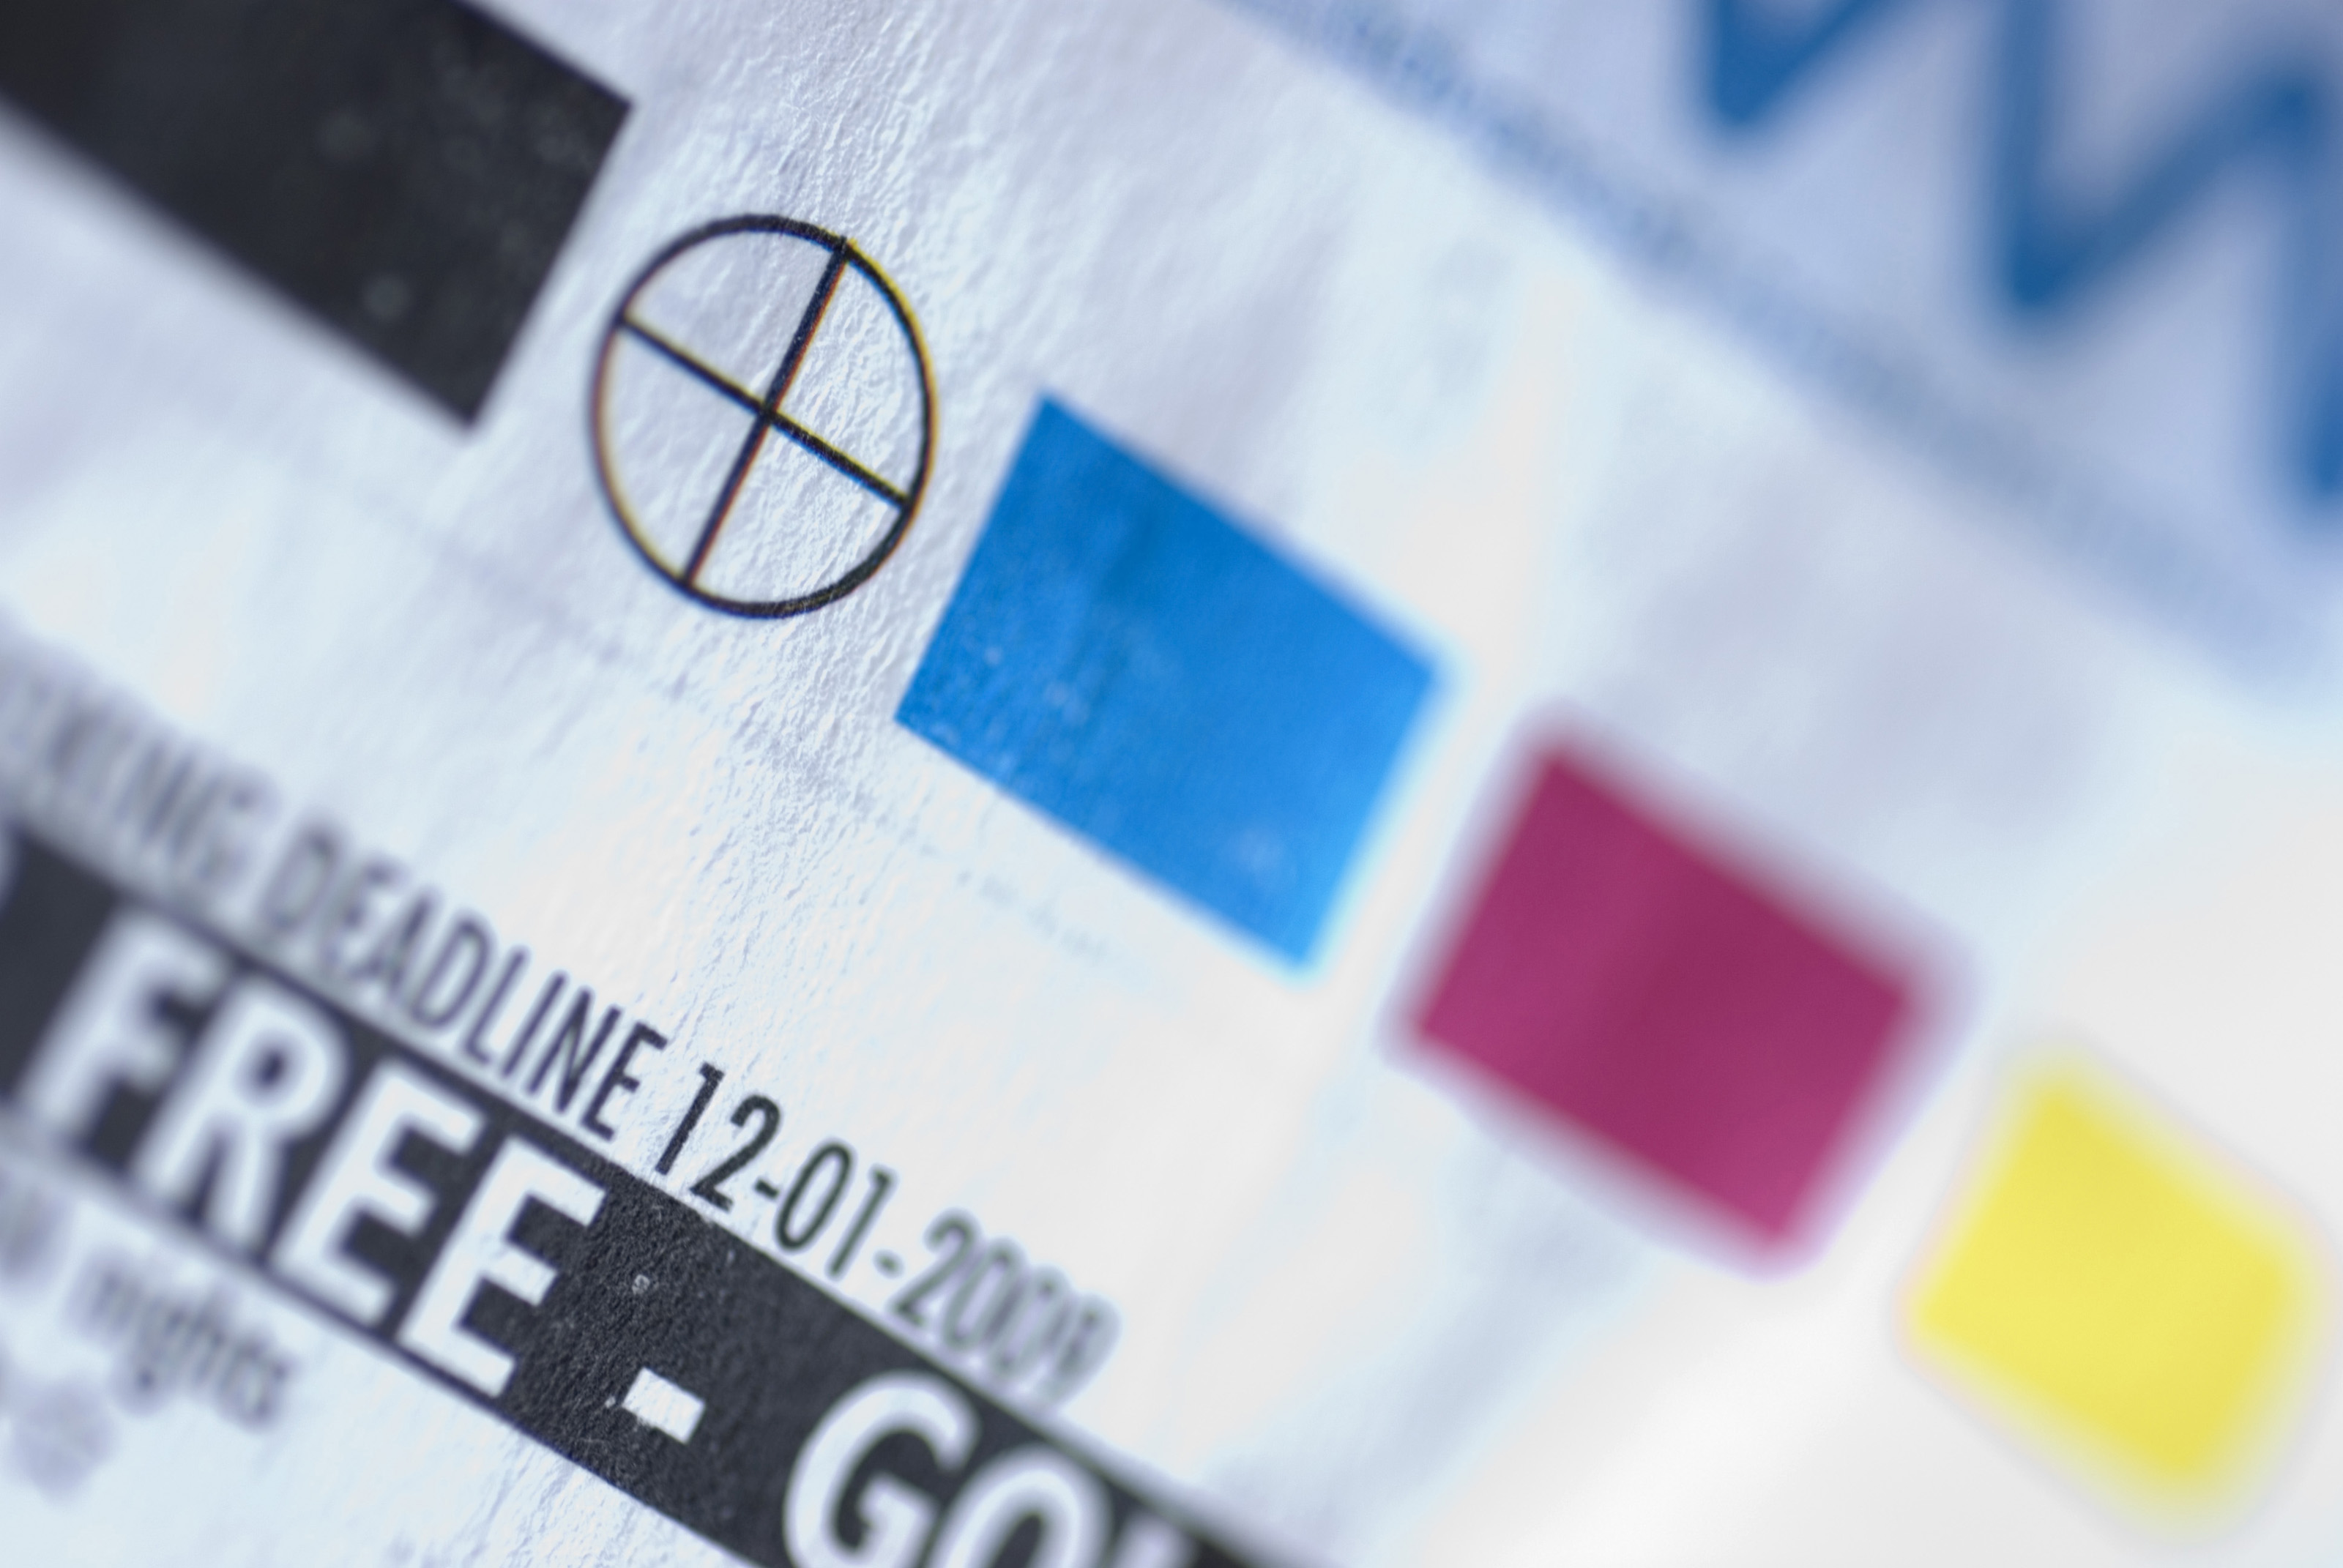 Selective Focus Extreme Close Up On Printer Registration Mark And Color Swatches Paper